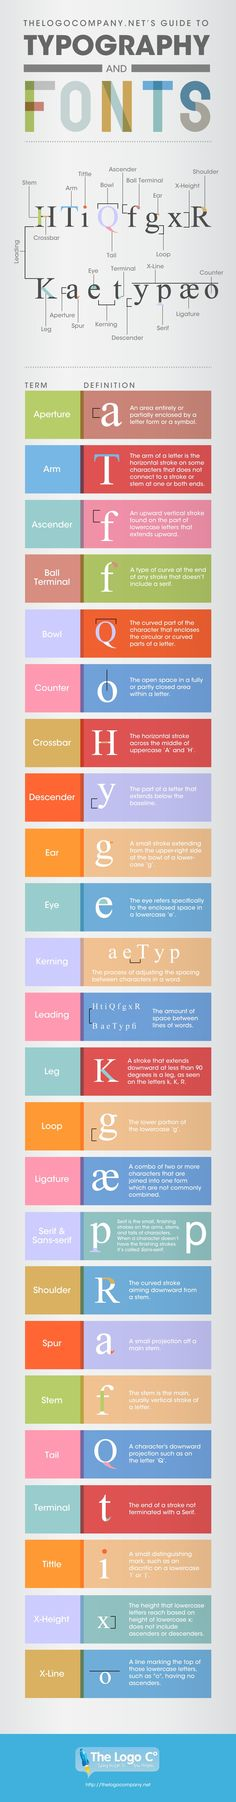 How Many Font Terms Do You Know?